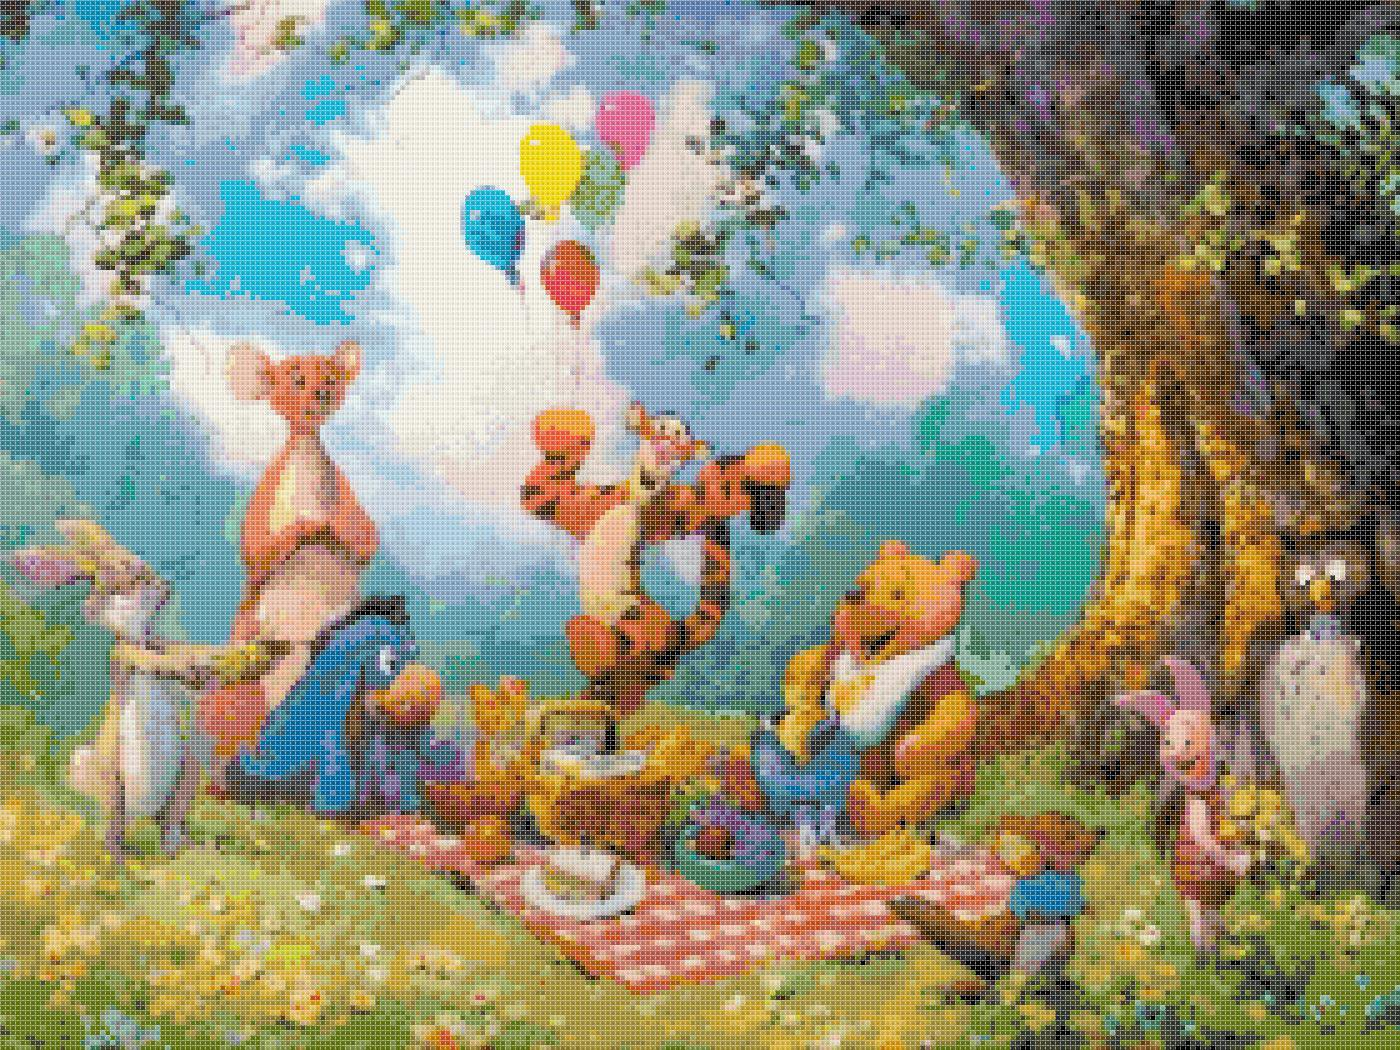 """Counted Cross Stitch winnie the pooh party watercolor - 20.00"""" x 15.00"""" - E1923"""